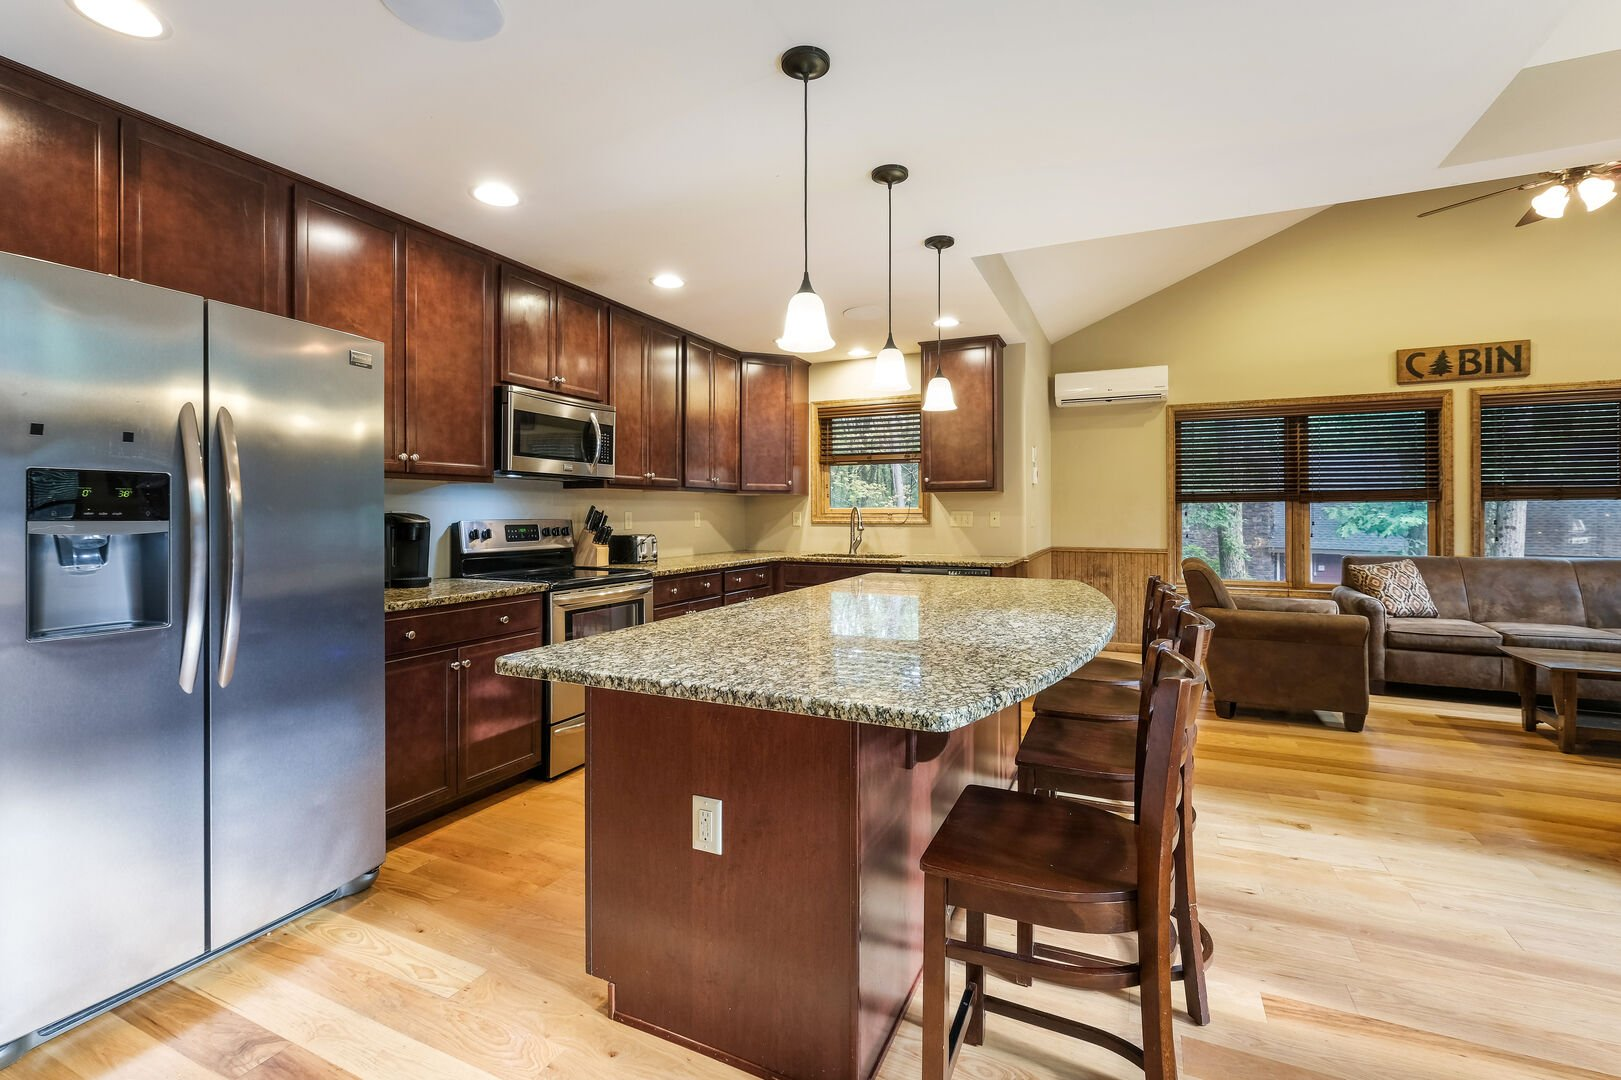 Kitchen island with bar seating, refrigerator, oven, and microwave. Living area seating visible to the right.